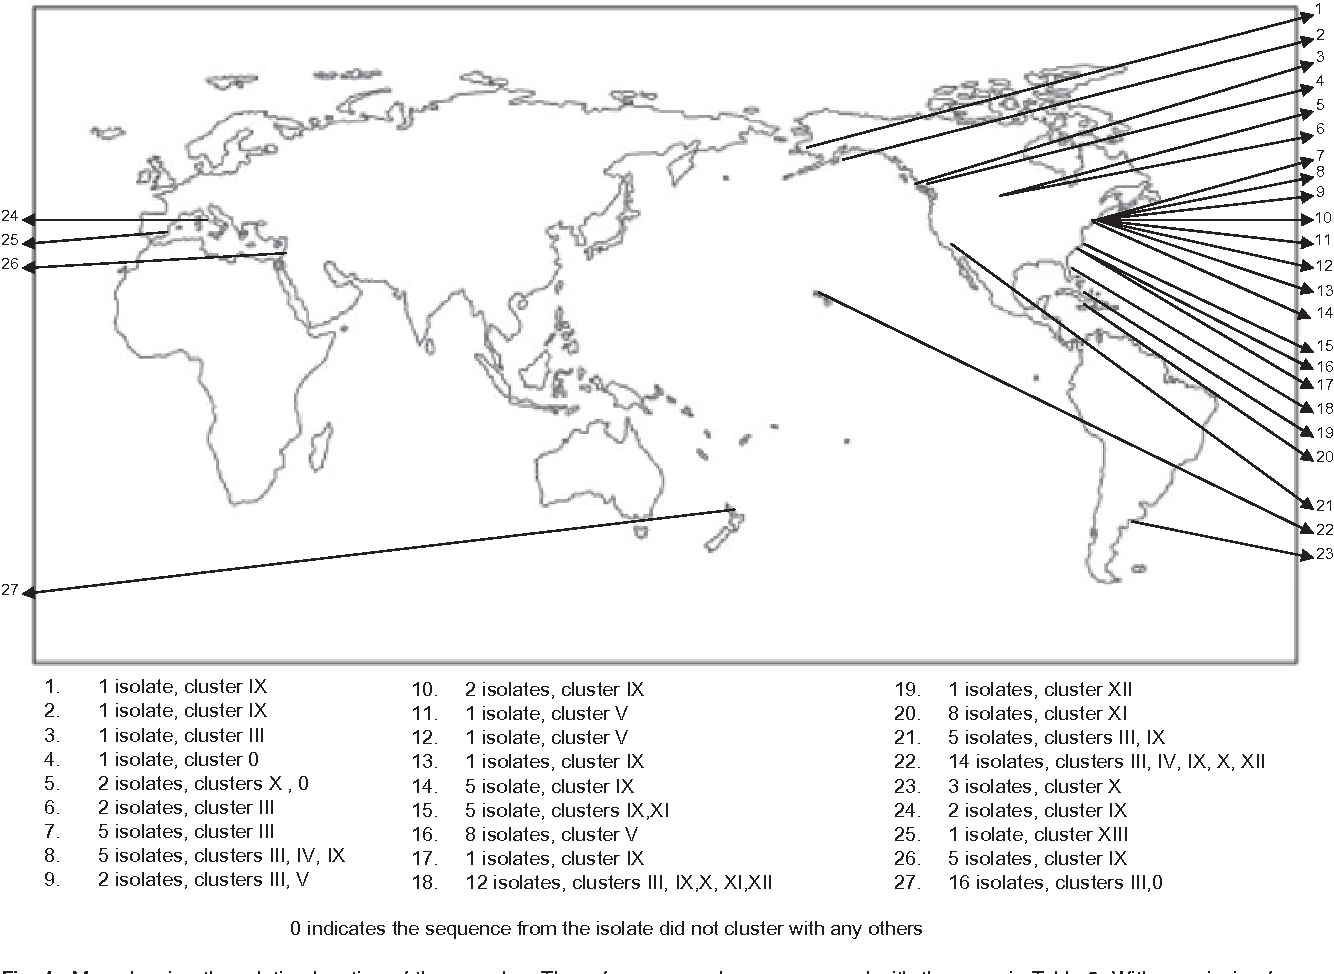 Fig. 1. Map showing the relative location of the samples. The reference numbers correspond with the ones in Table 2. With permission from http://serc.carleton.edu/images/usingdata/nasaimages/world-map-outline.gif.